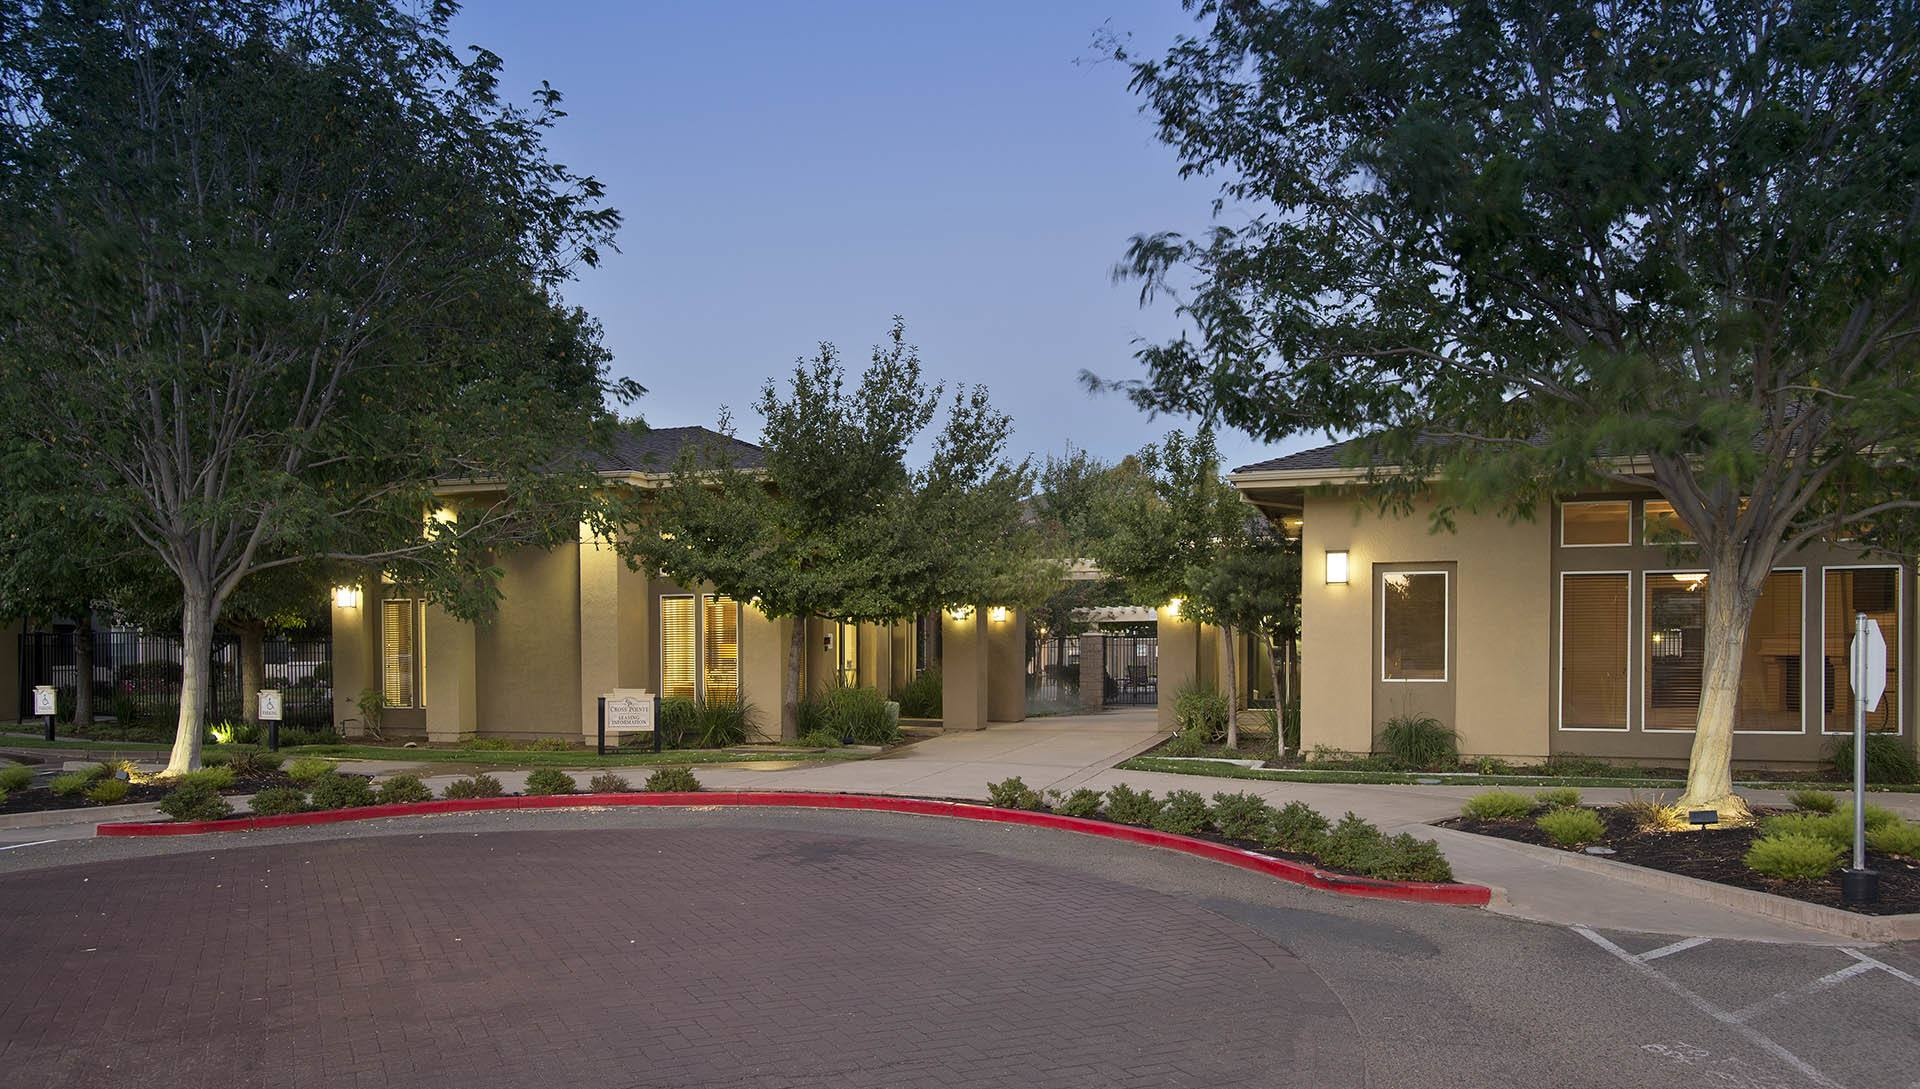 Apartments in Antioch, CA